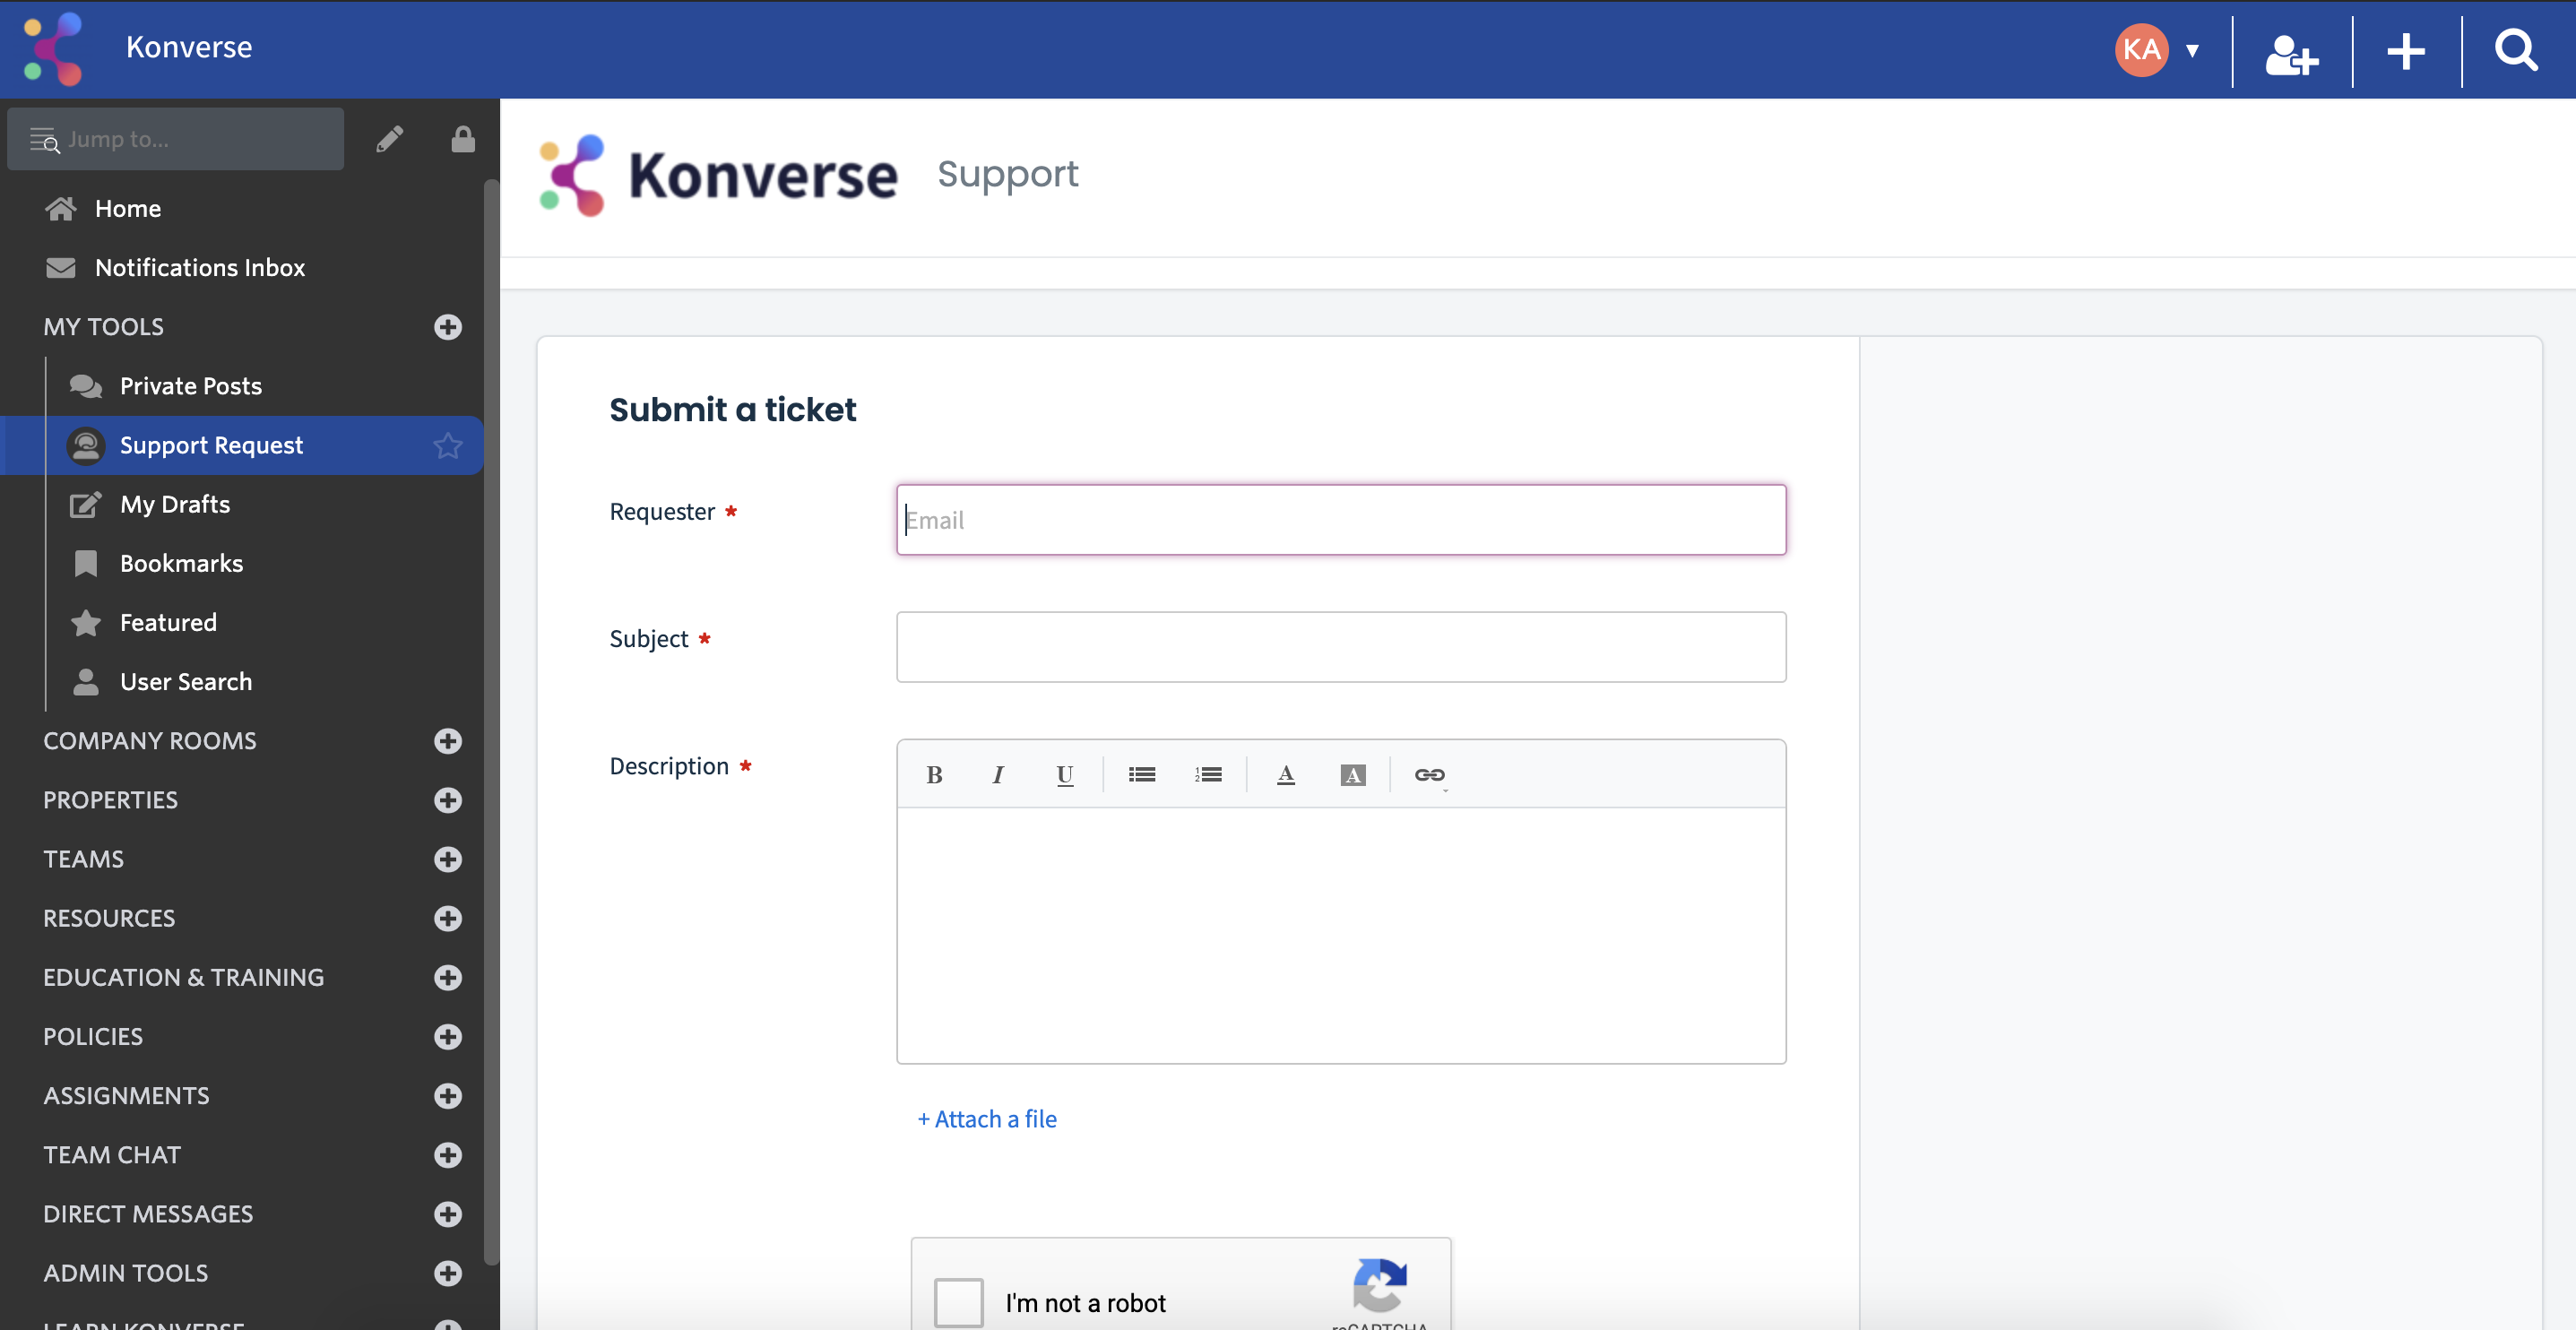 How to Access Support _ Konverse